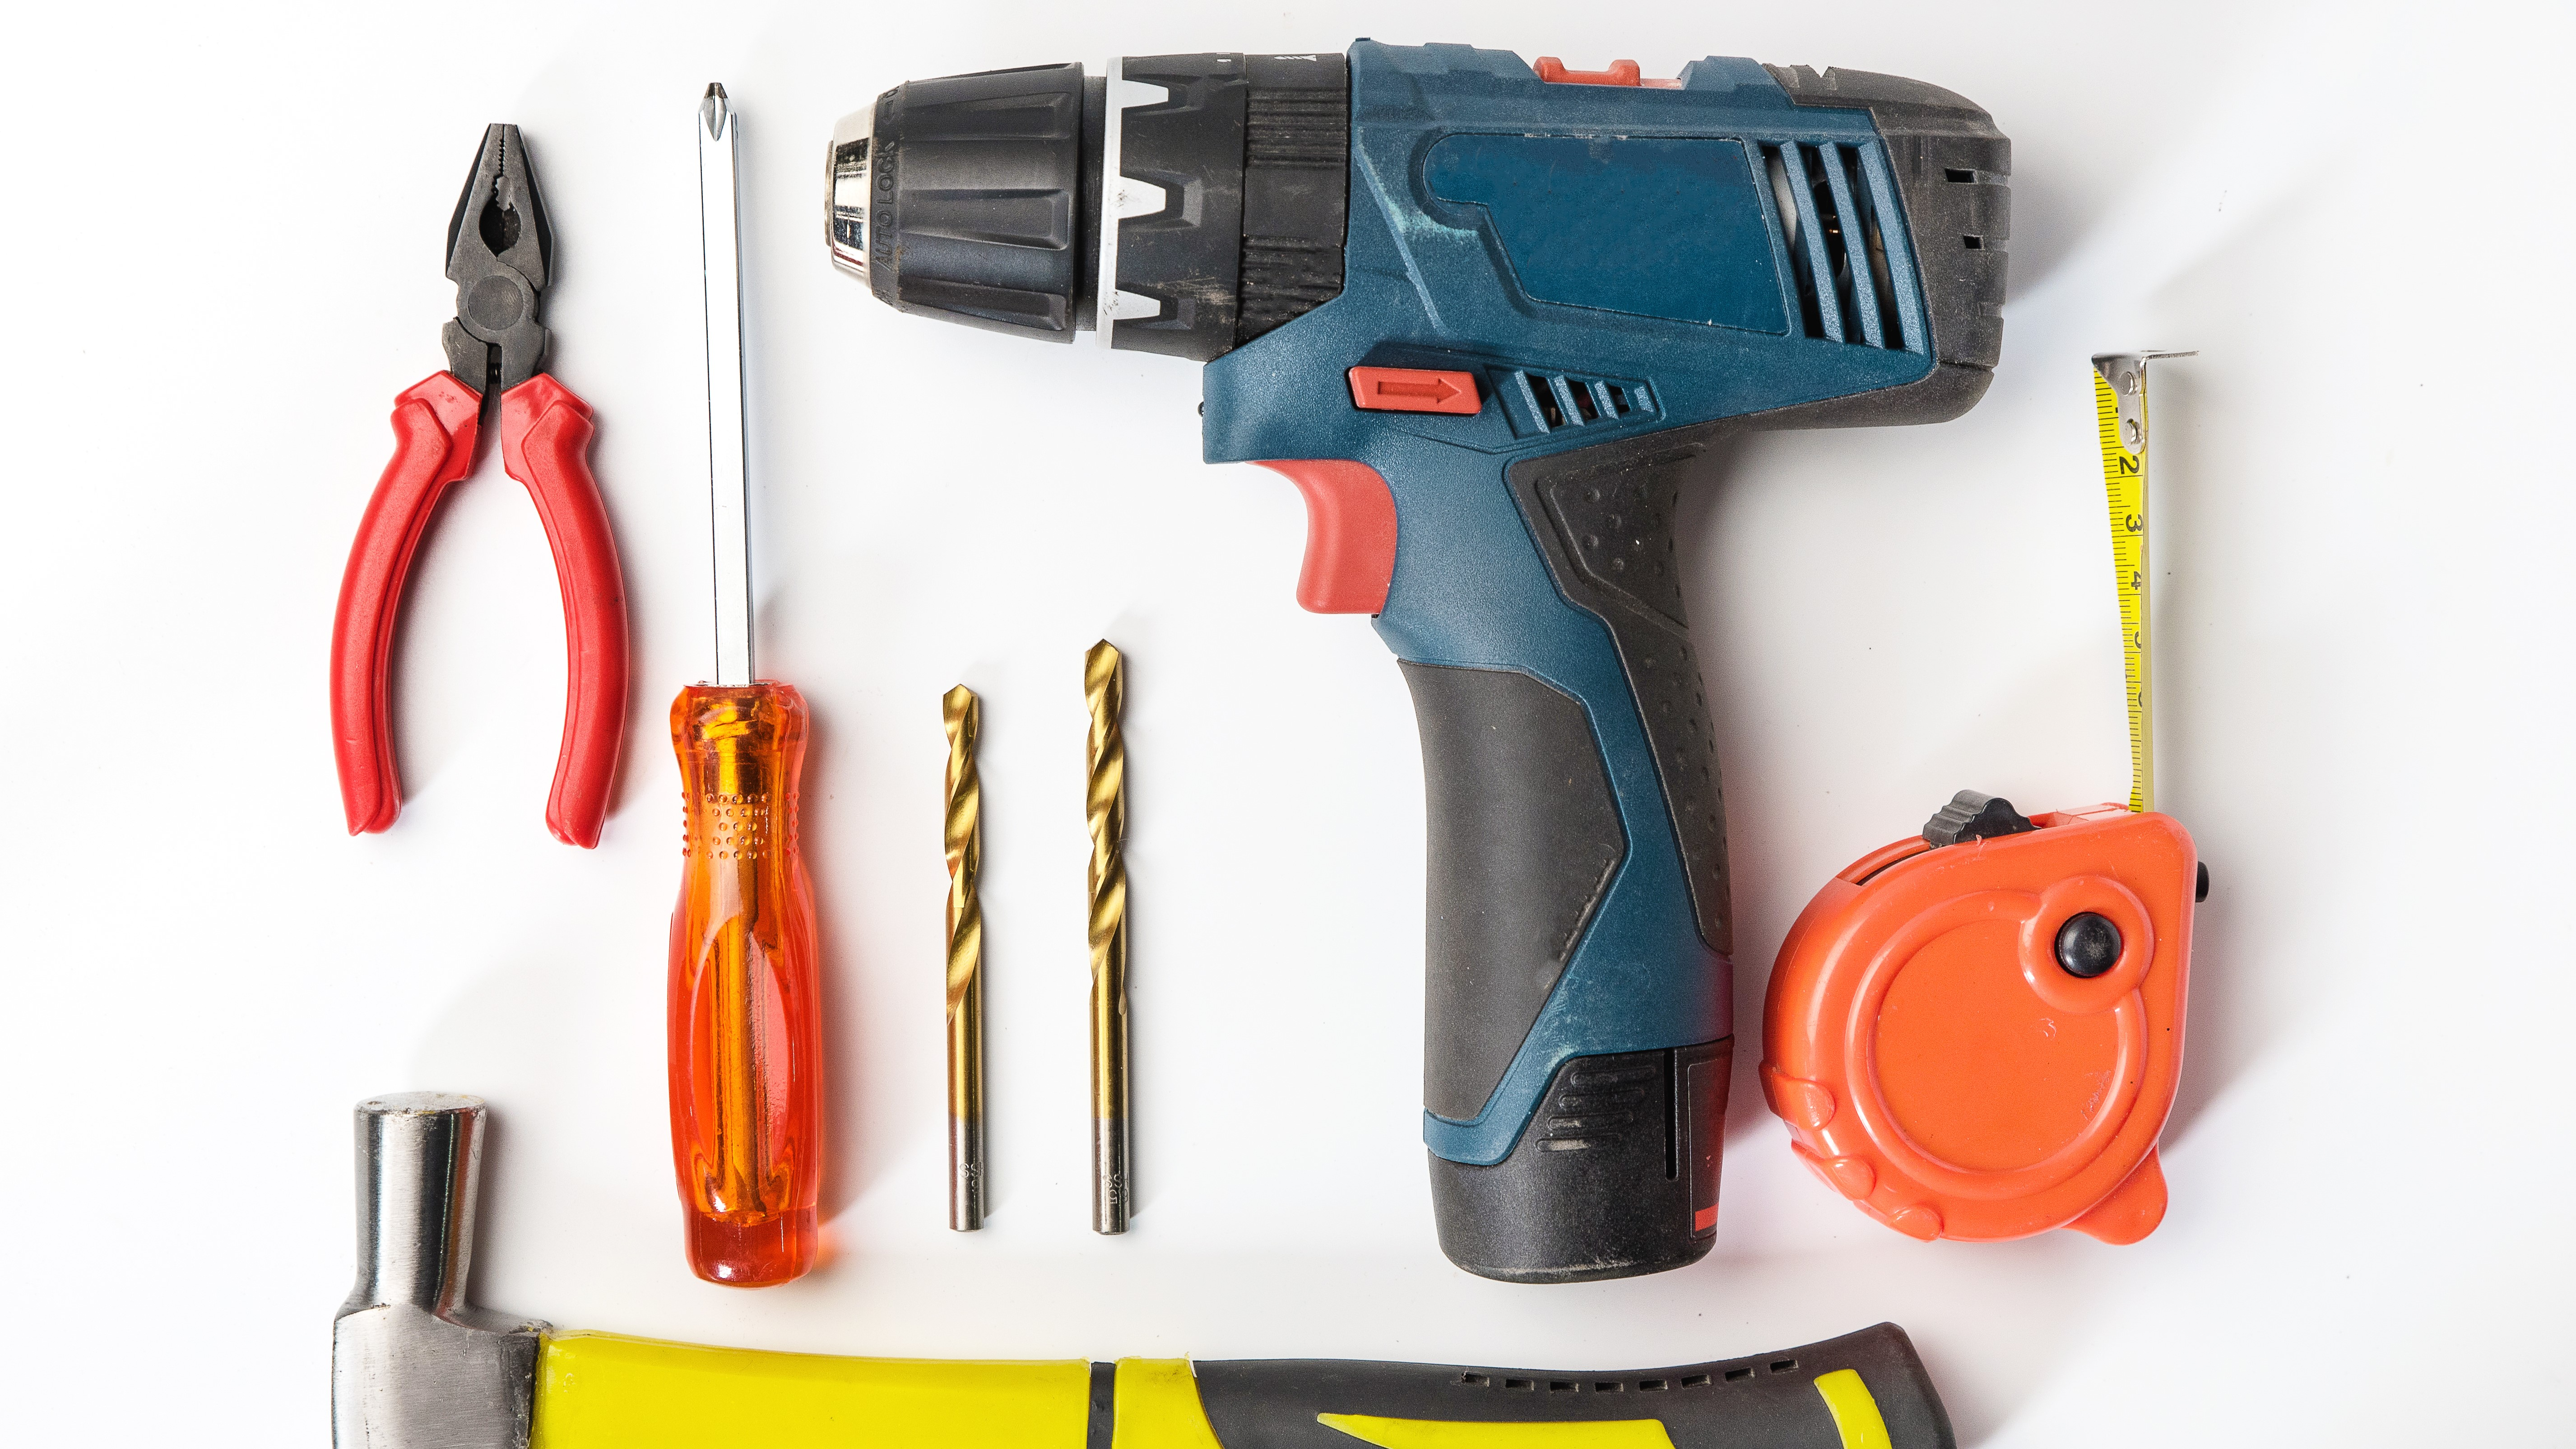 Fitting tools